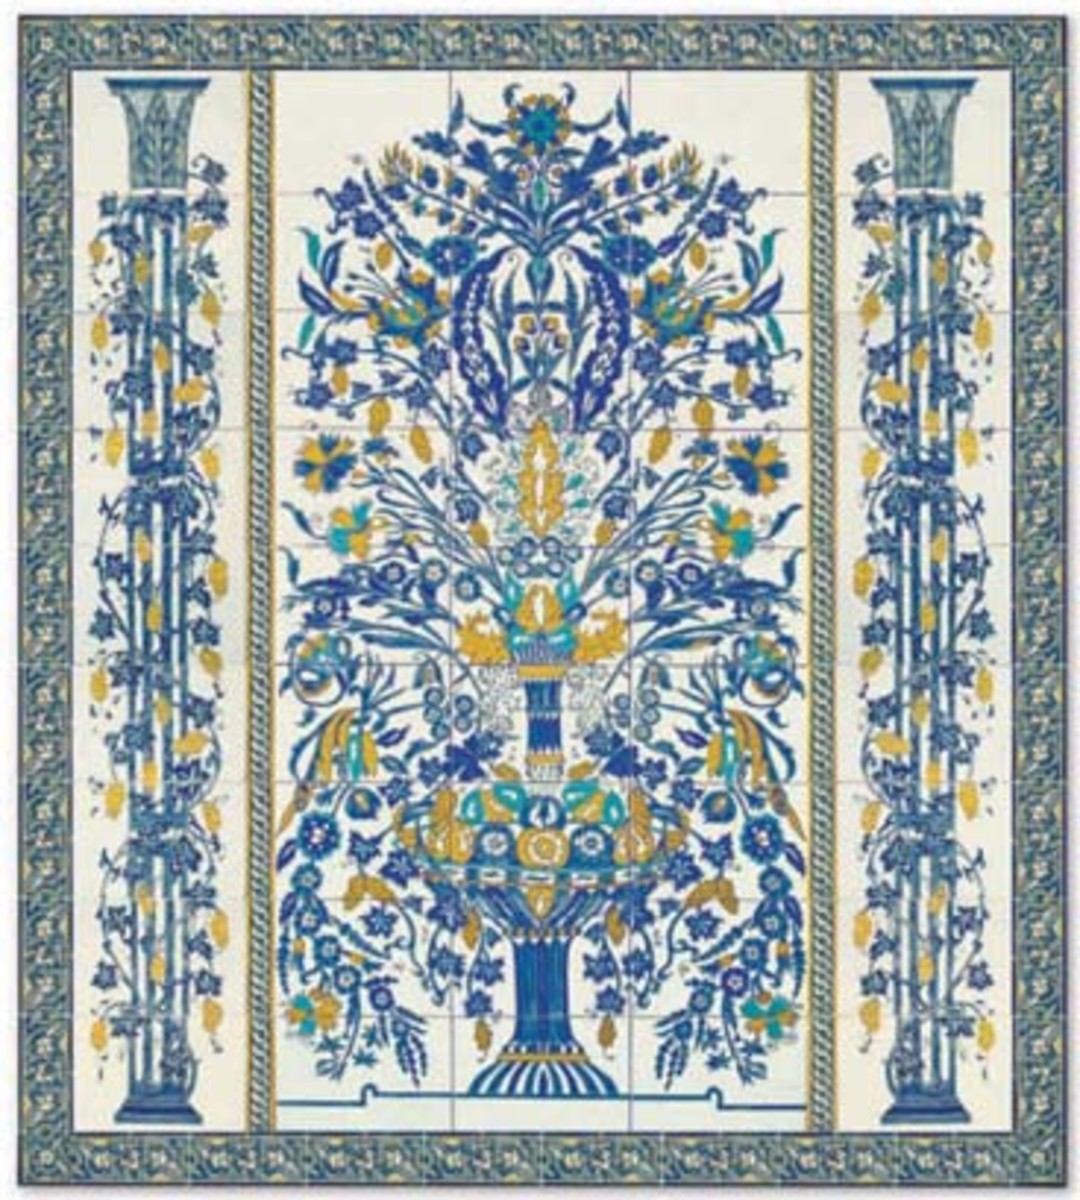 beautiful blue tile intricate floral design in a Mediterranean style